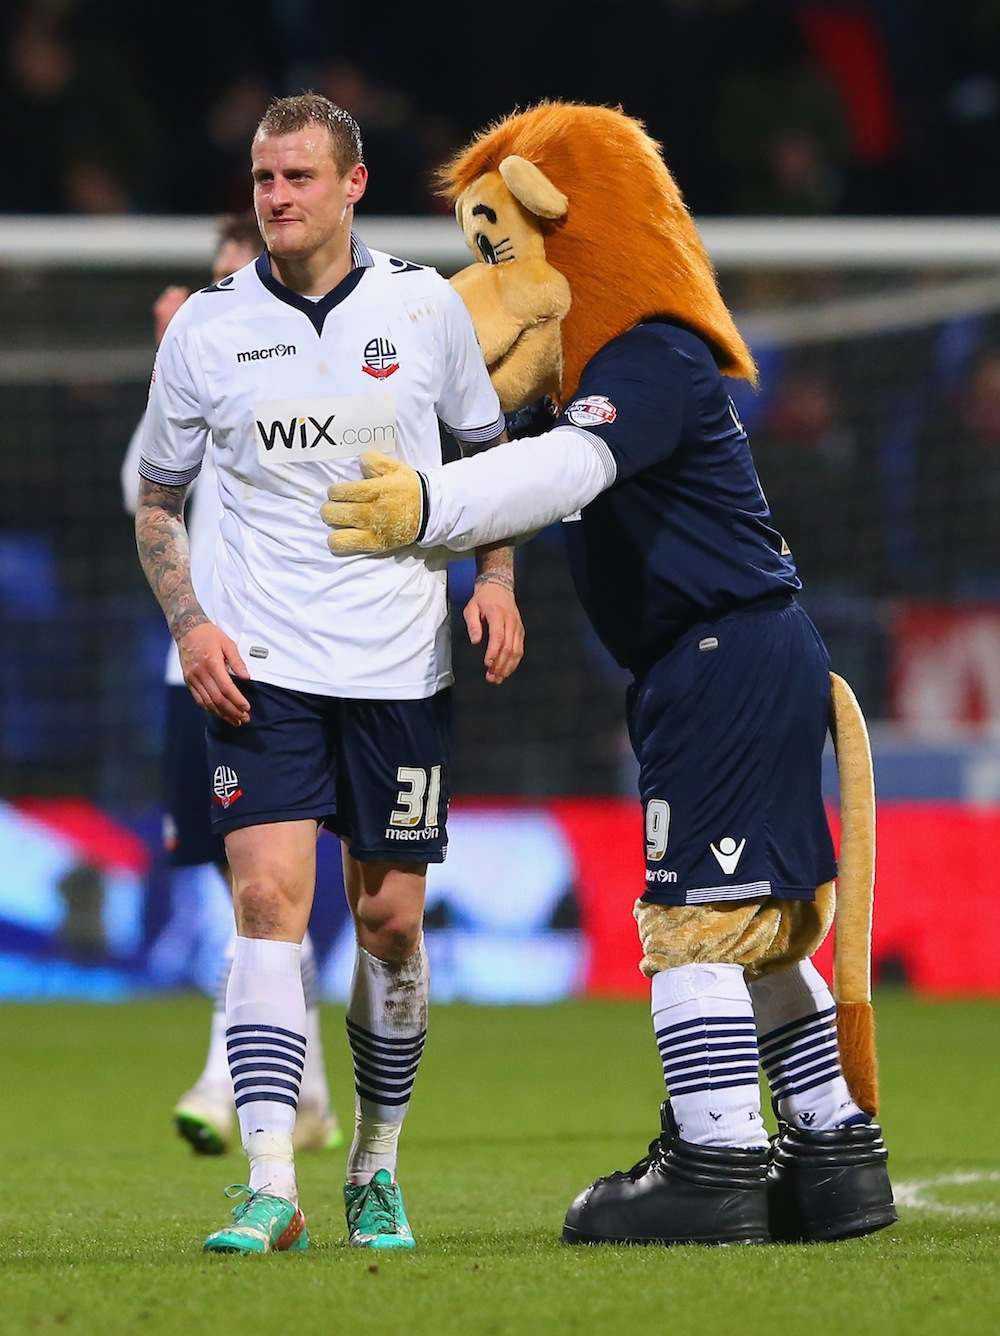 BOLTON, ENGLAND - FEBRUARY 04:  Lofty the Lion mascot consoles David Wheater of Bolton Wanderers after defeat in the FA Cup Fourth round replay between Bolton Wanderers and Liverpool at Macron Stadium on February 4, 2015 in Bolton, England.  (Photo by Alex Livesey/Getty Images)